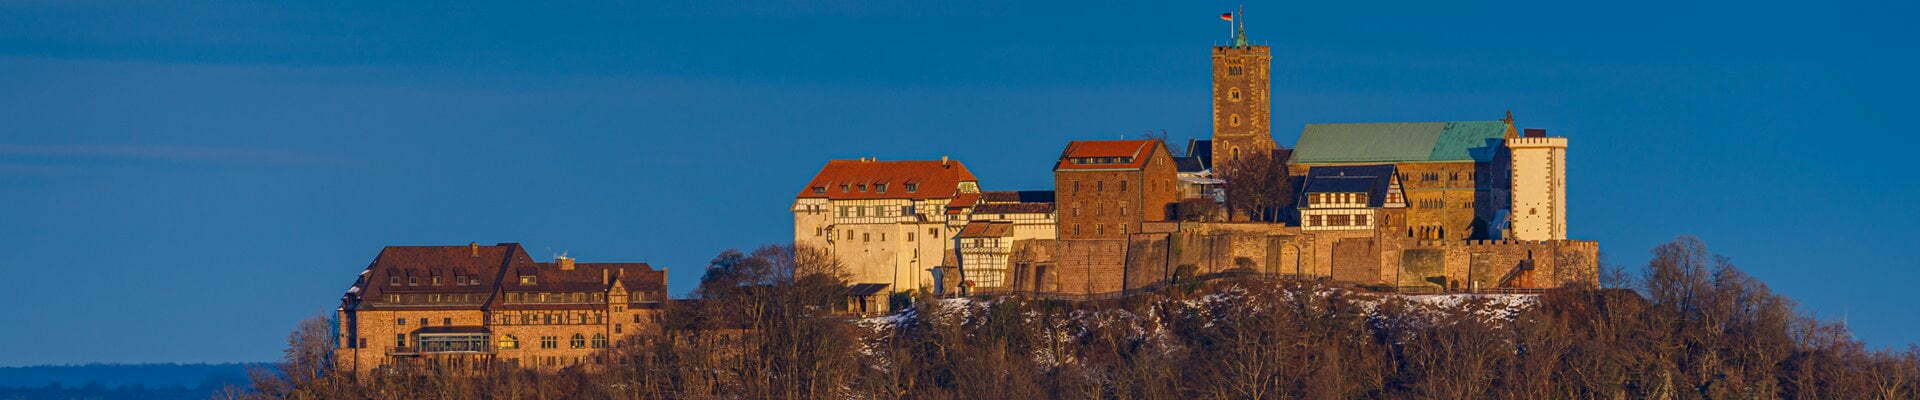 Wartburg Castle at Eisenach in the Thuringia Forest, Germany.